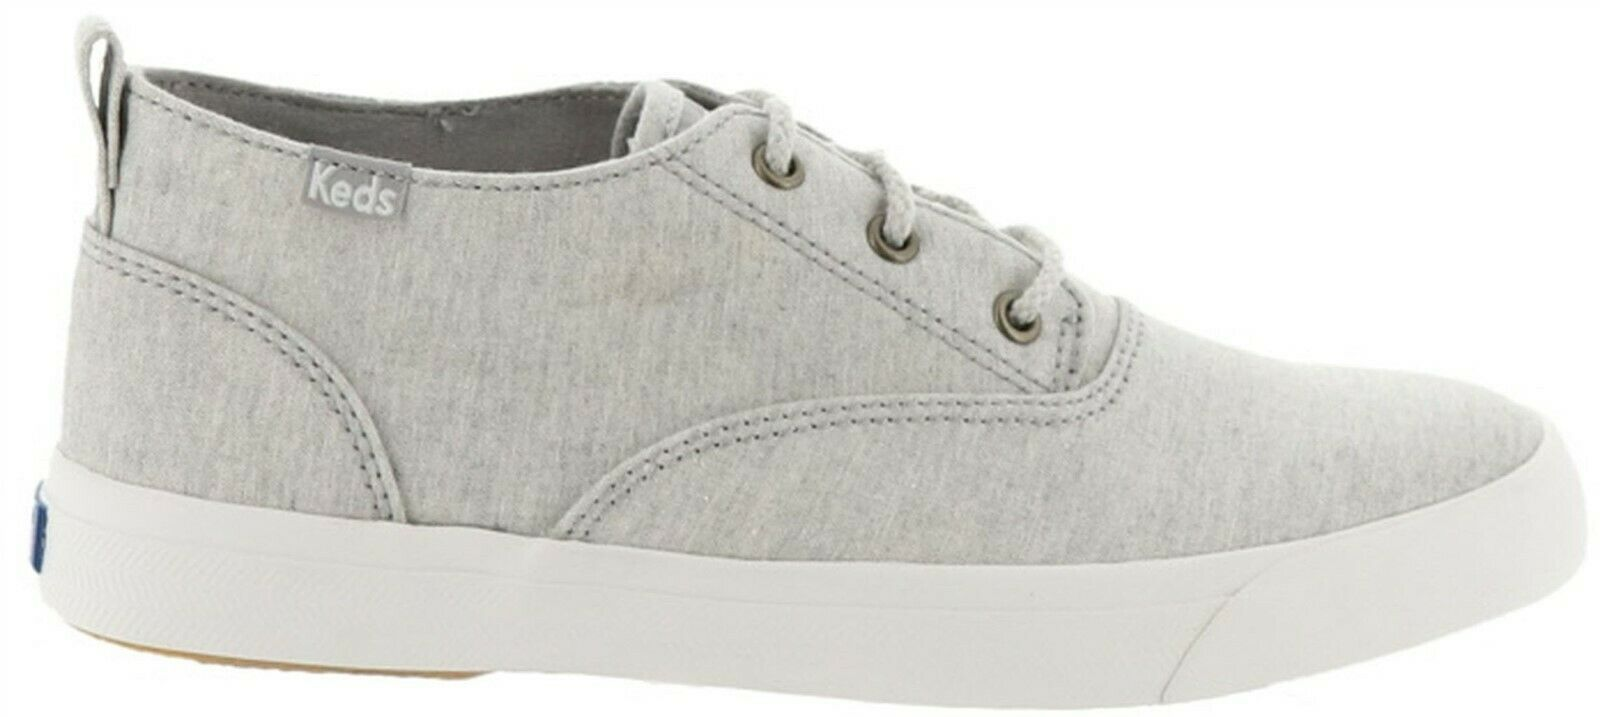 Primary image for Keds Triumph Sneaker LIGHT GRAY 10 NEW 532-318